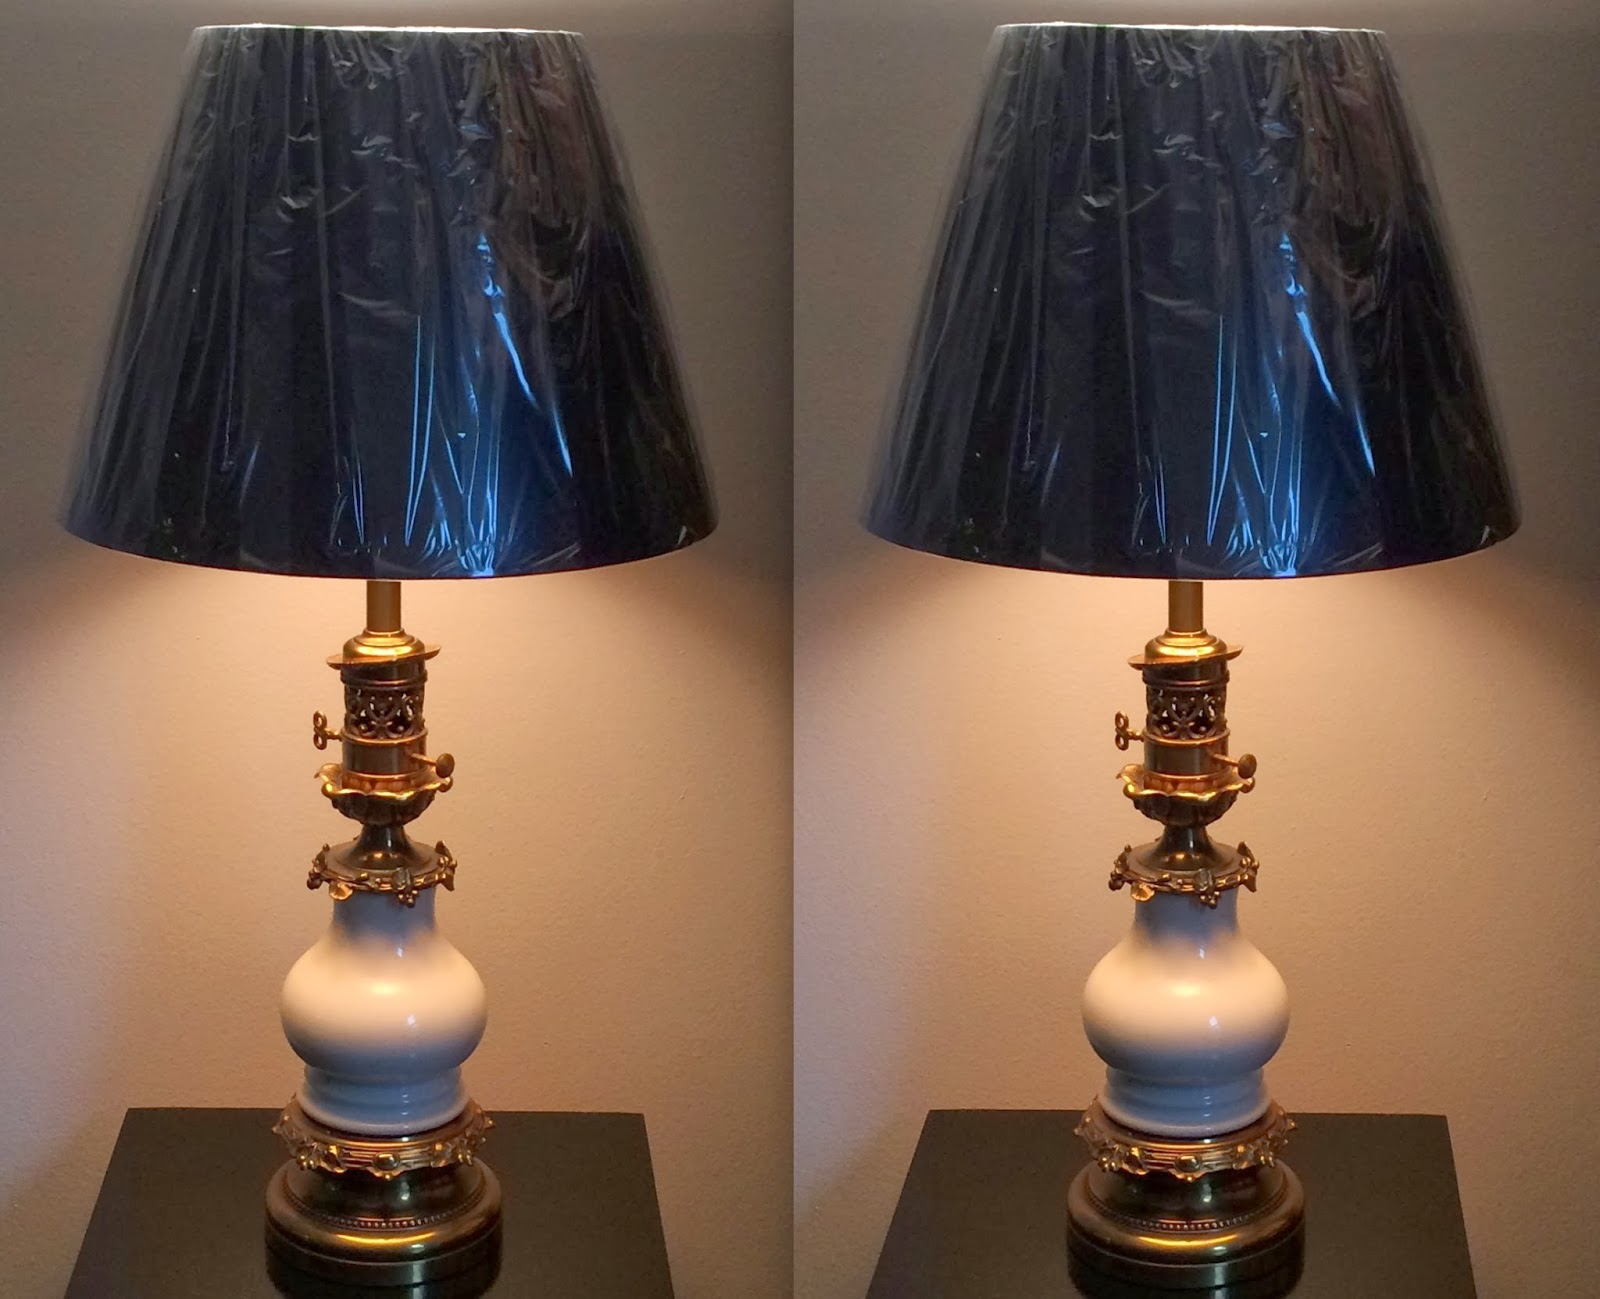 Lamp Shades For Table Lamps at Home and Interior Design Ideas